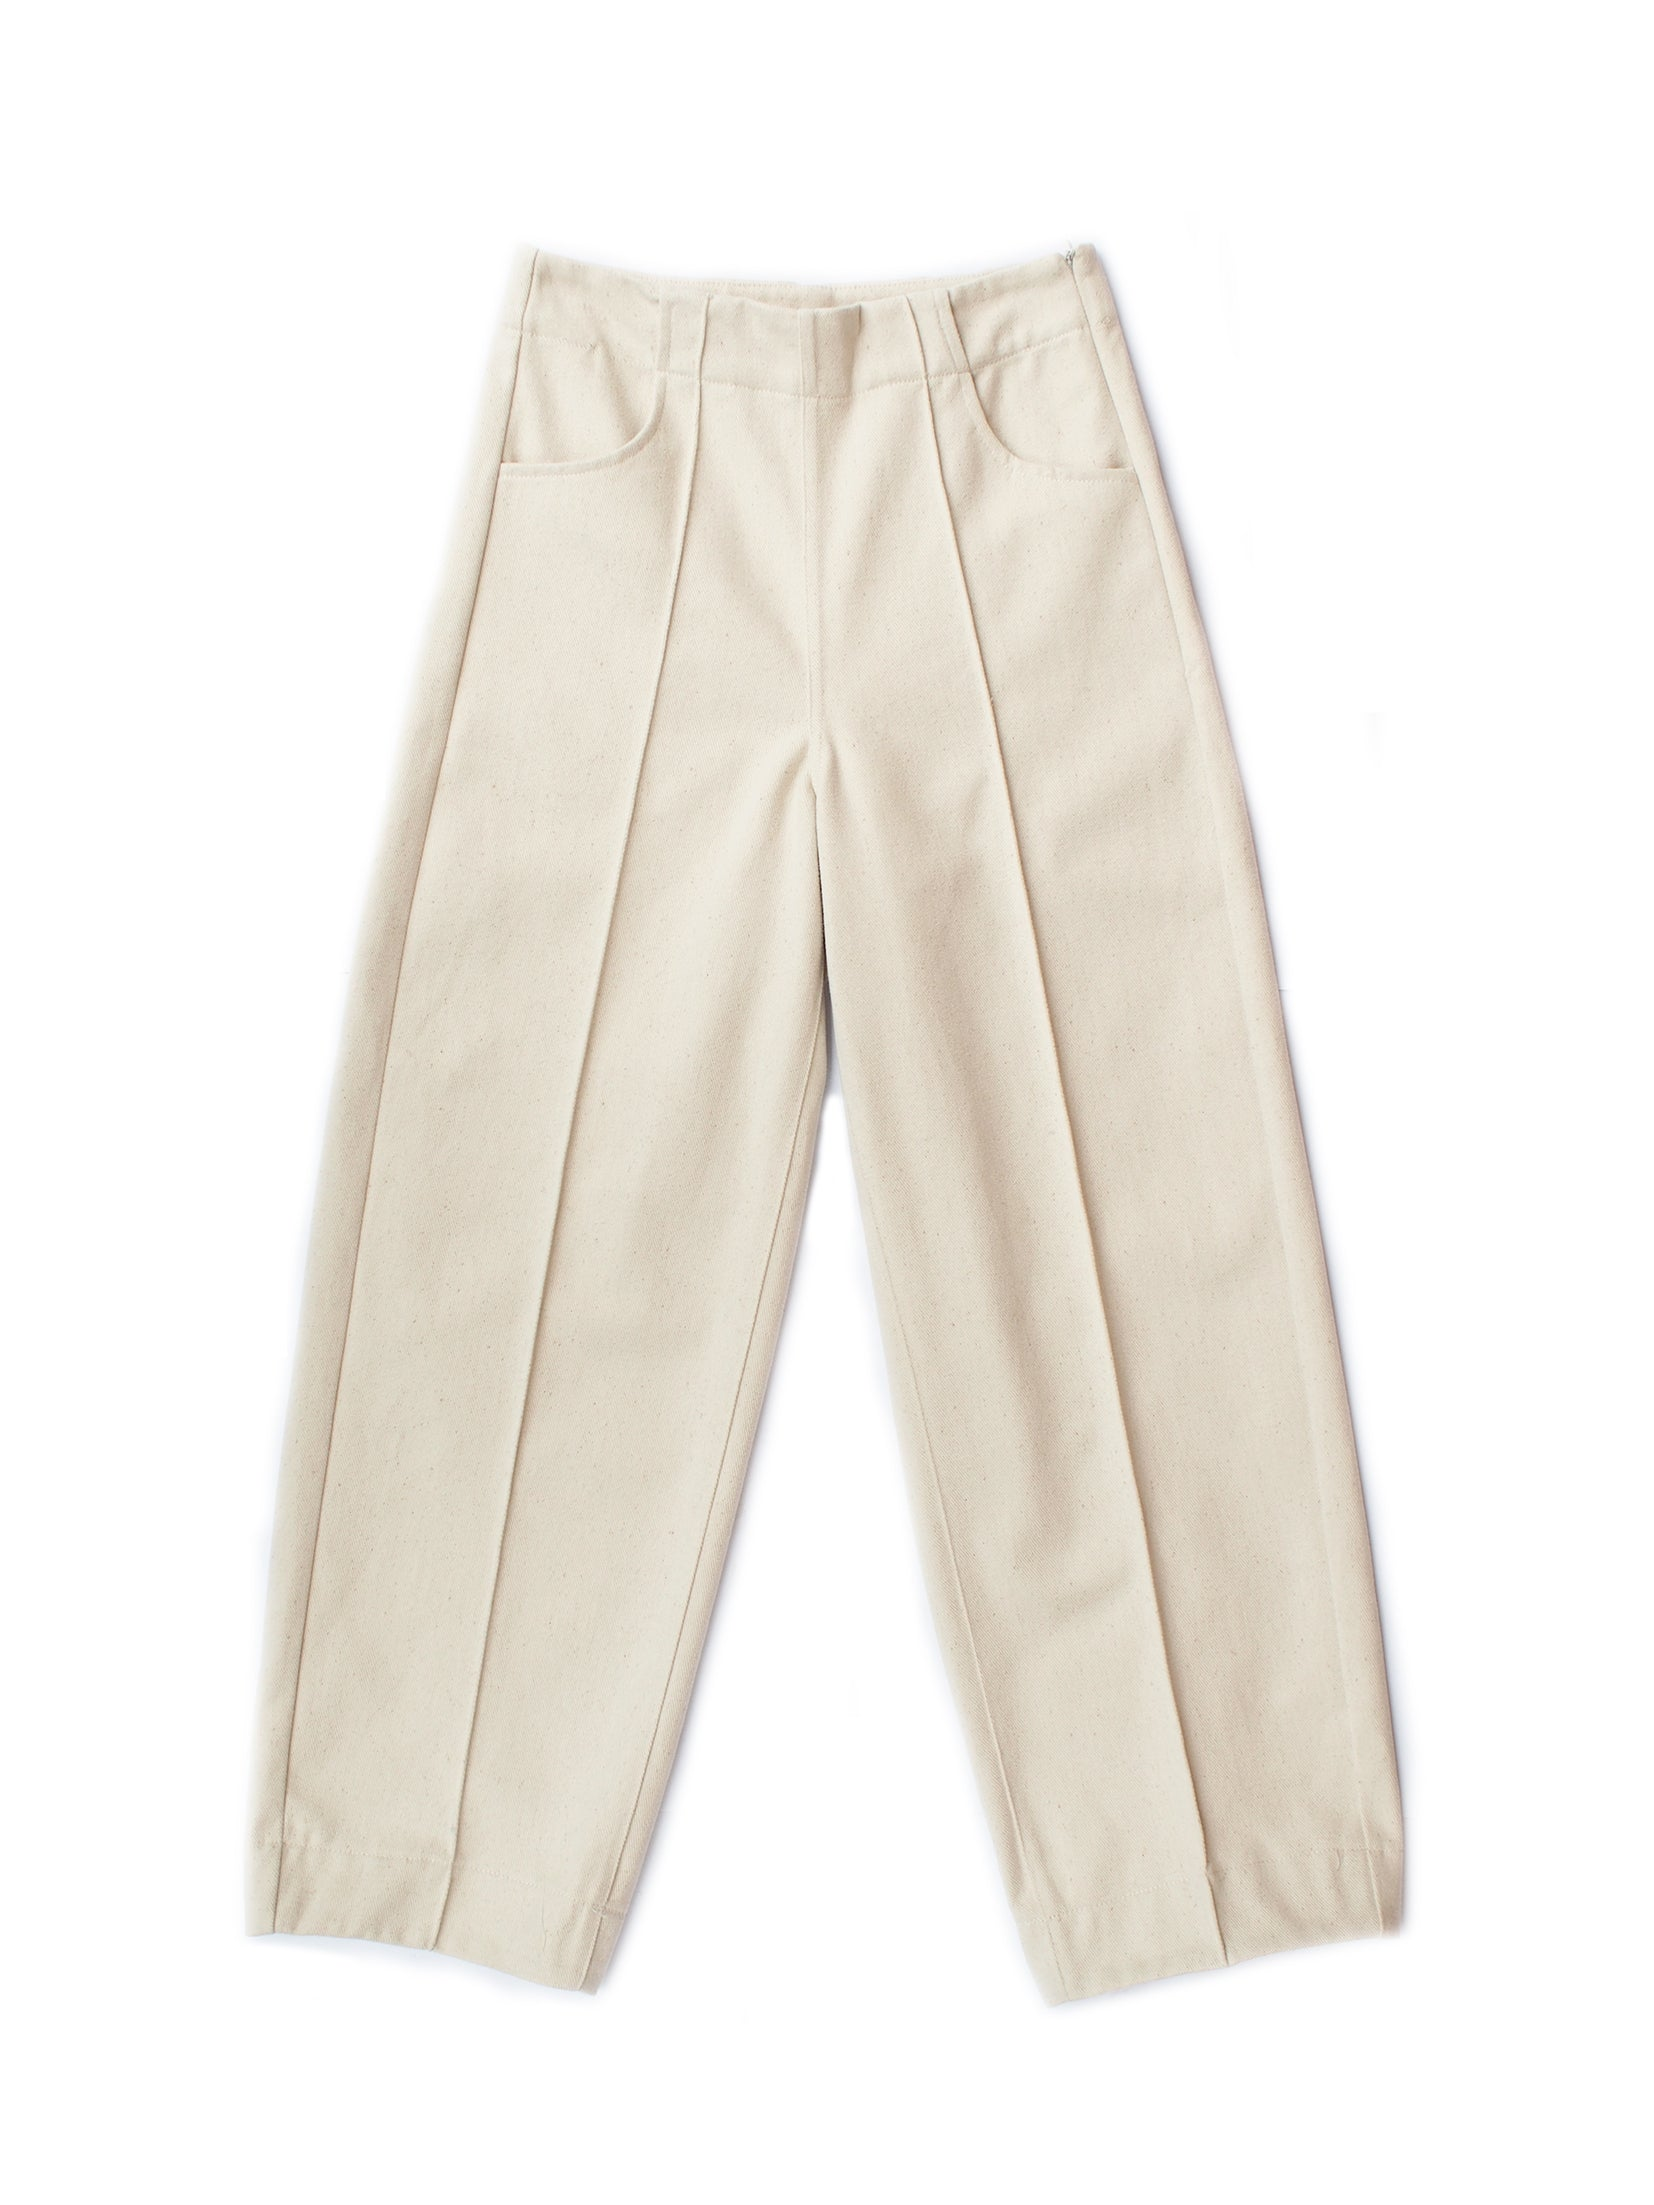 TAB PANTS, NATURAL